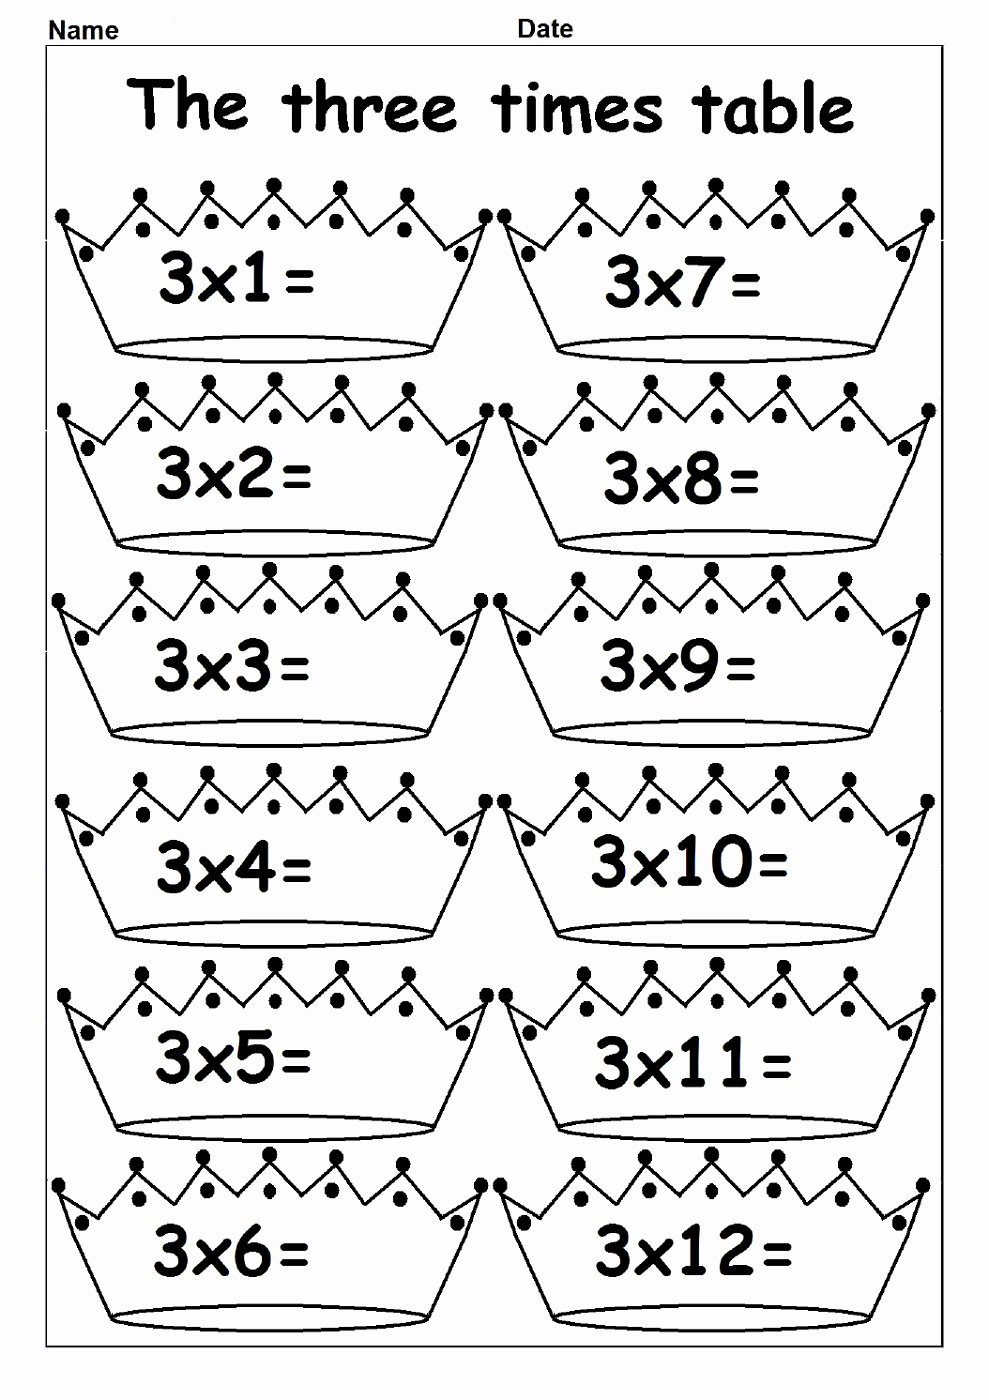 3 Times Table Worksheet Lovely Printable 3 Times Table Chart